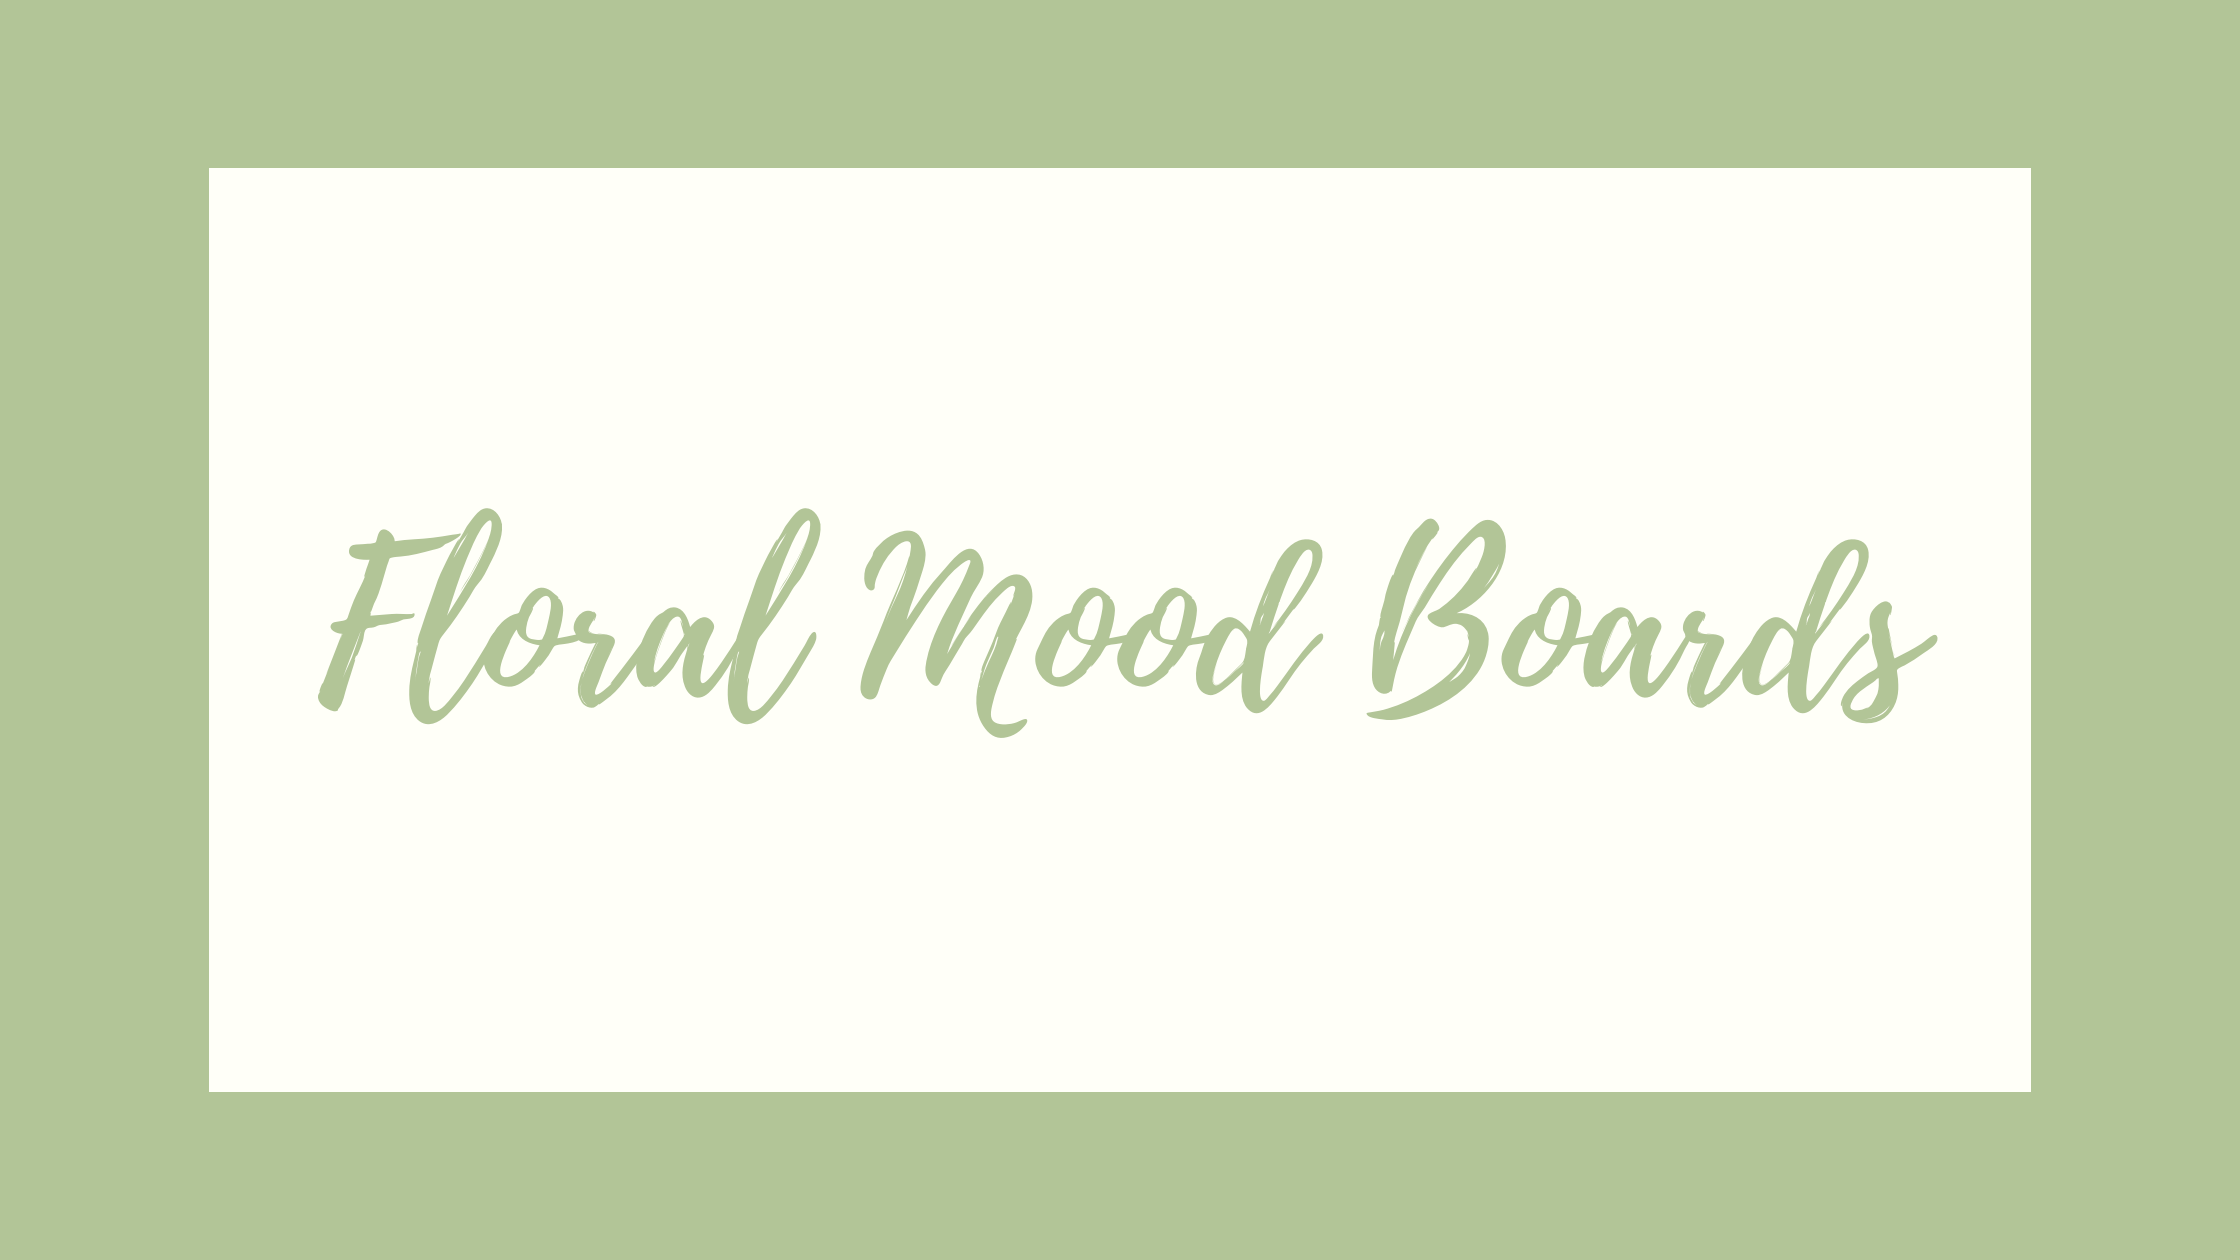 Floral Mood Boards Graphic